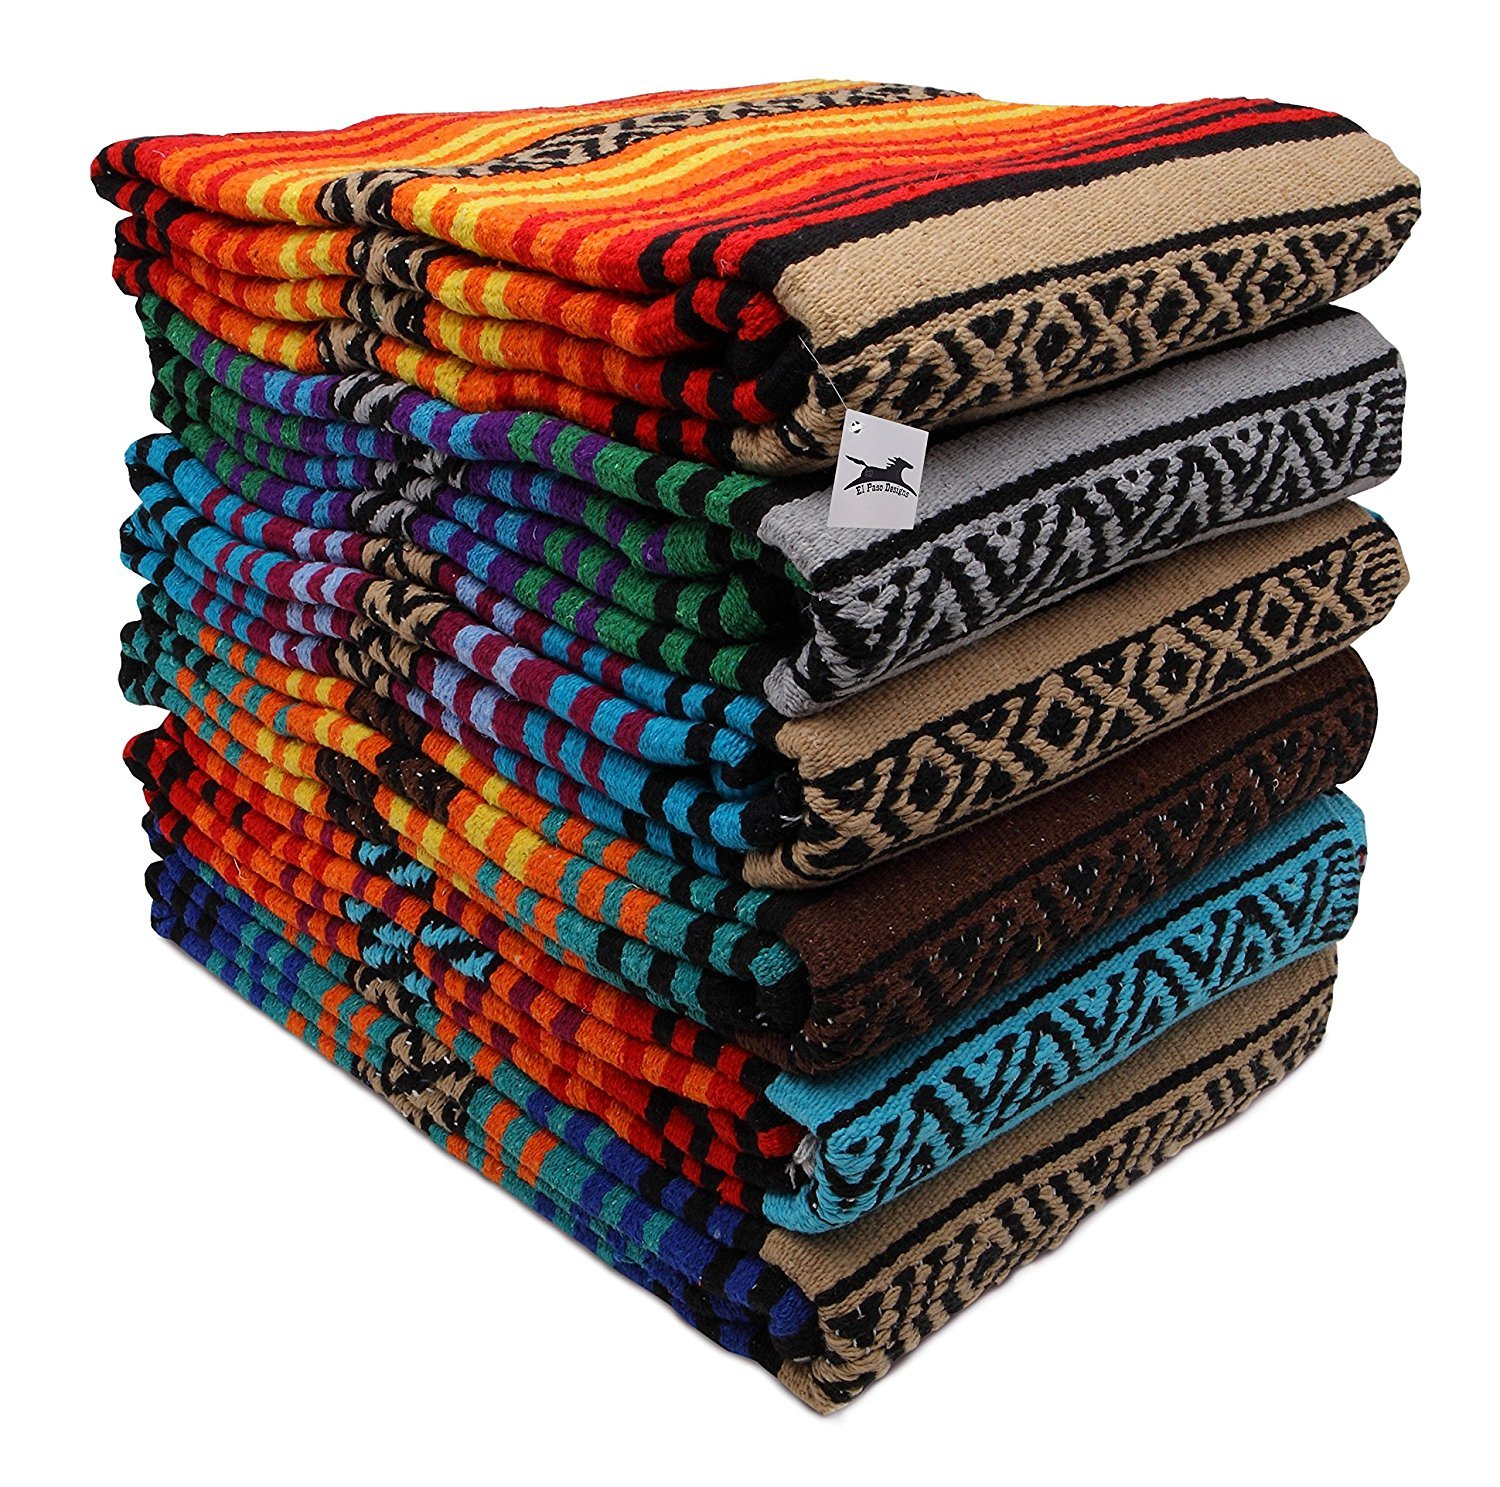 El Paso Designs Peyote Hippie Blanket  Yoga Blanket